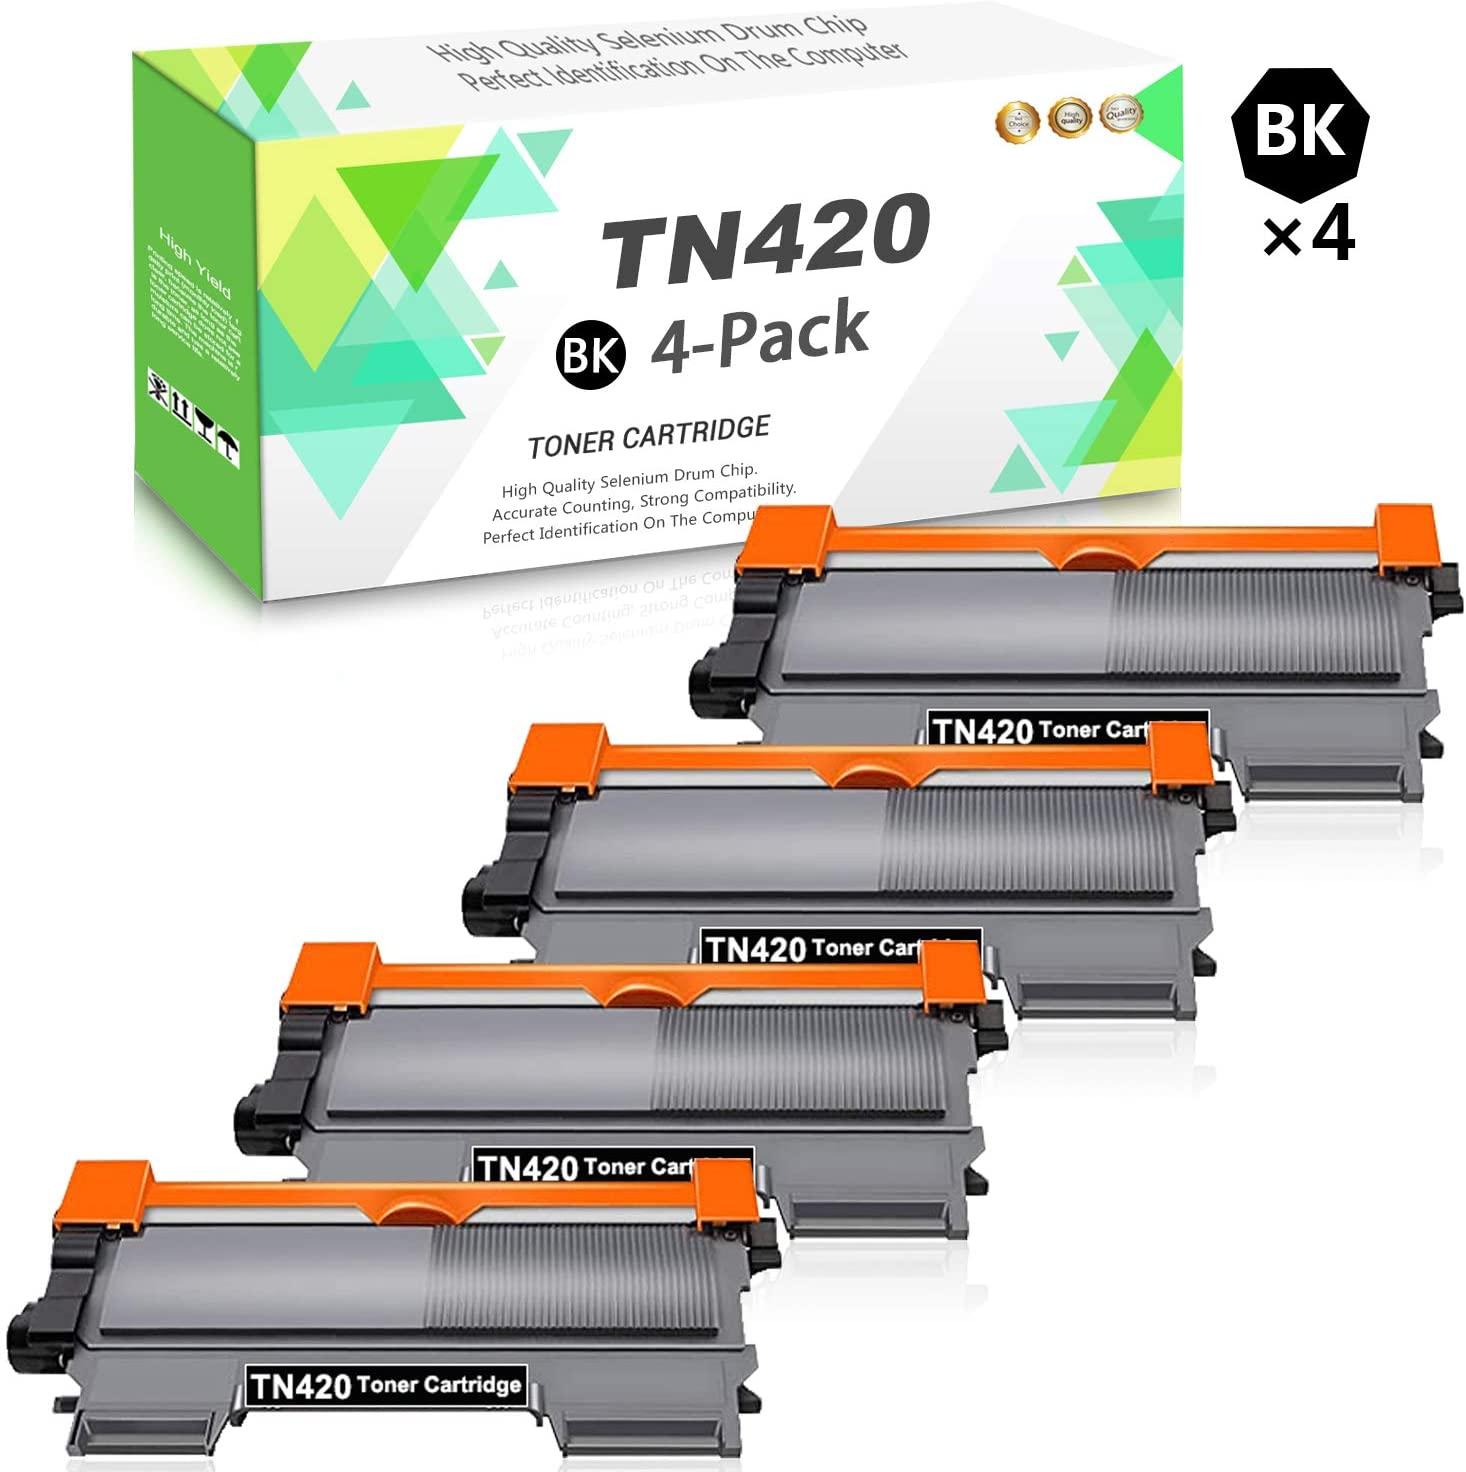 Compatible TN420 Toner Cartridge (Black,4-Pack) Replacement for Brother HL-2130 HL-2132 HL-2220 MFC-7240 MFC-7360N MFC-7365DN DCP-7060D DCP-7065D Intellifax 2840 Series Printer,Sold by TmallToner.